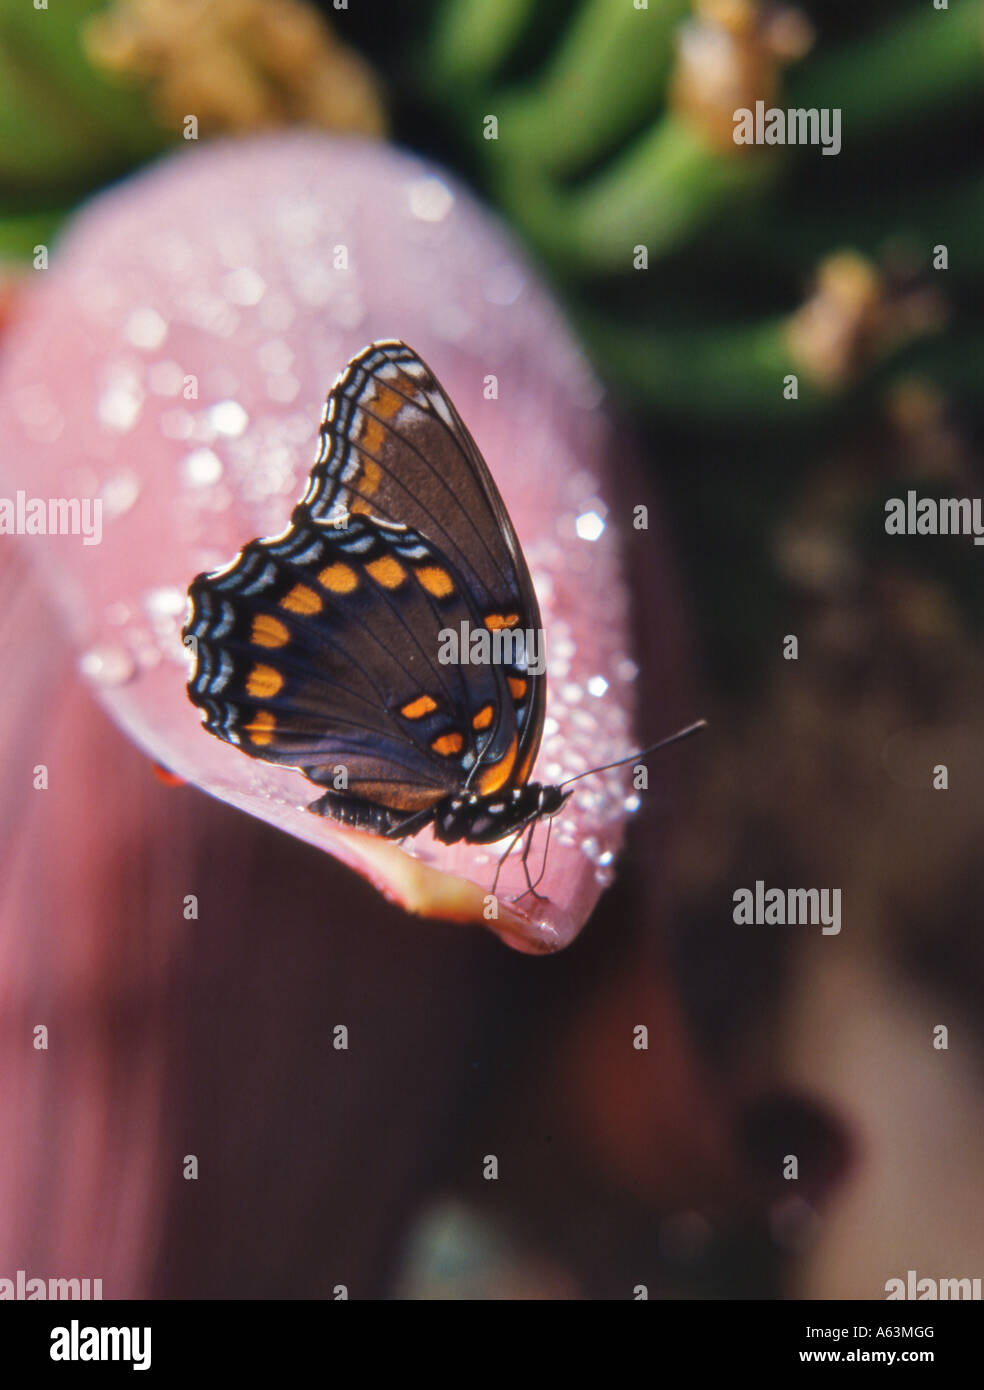 Limenitis astyanax butterfly USA - Stock Image